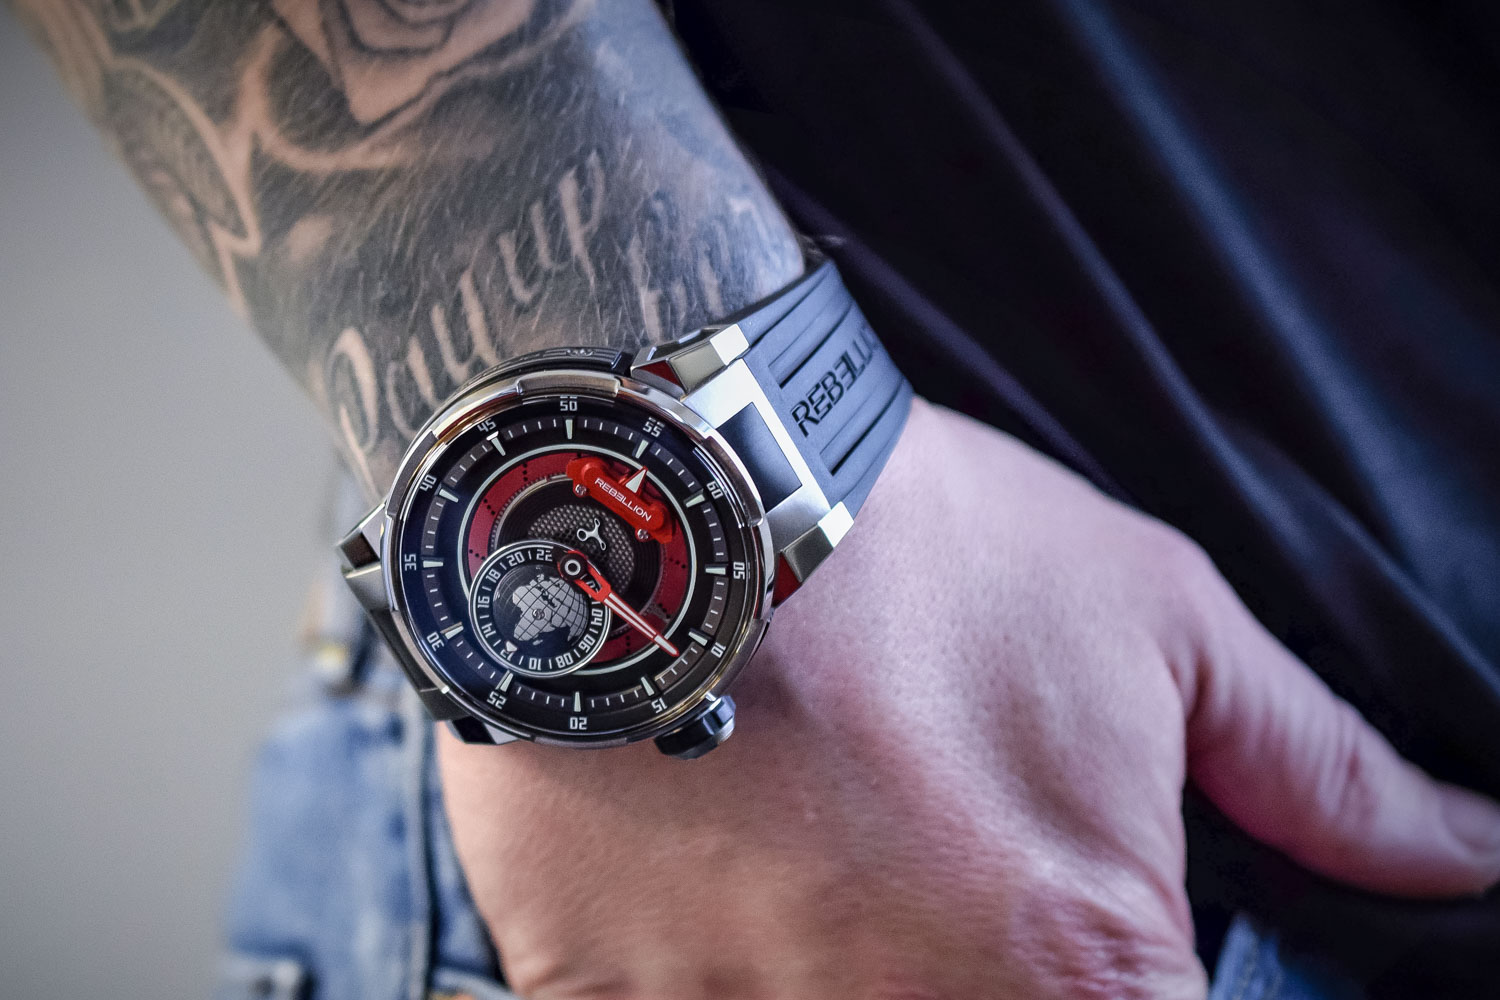 Introducing the Rebellion Predator 2.0 GMT